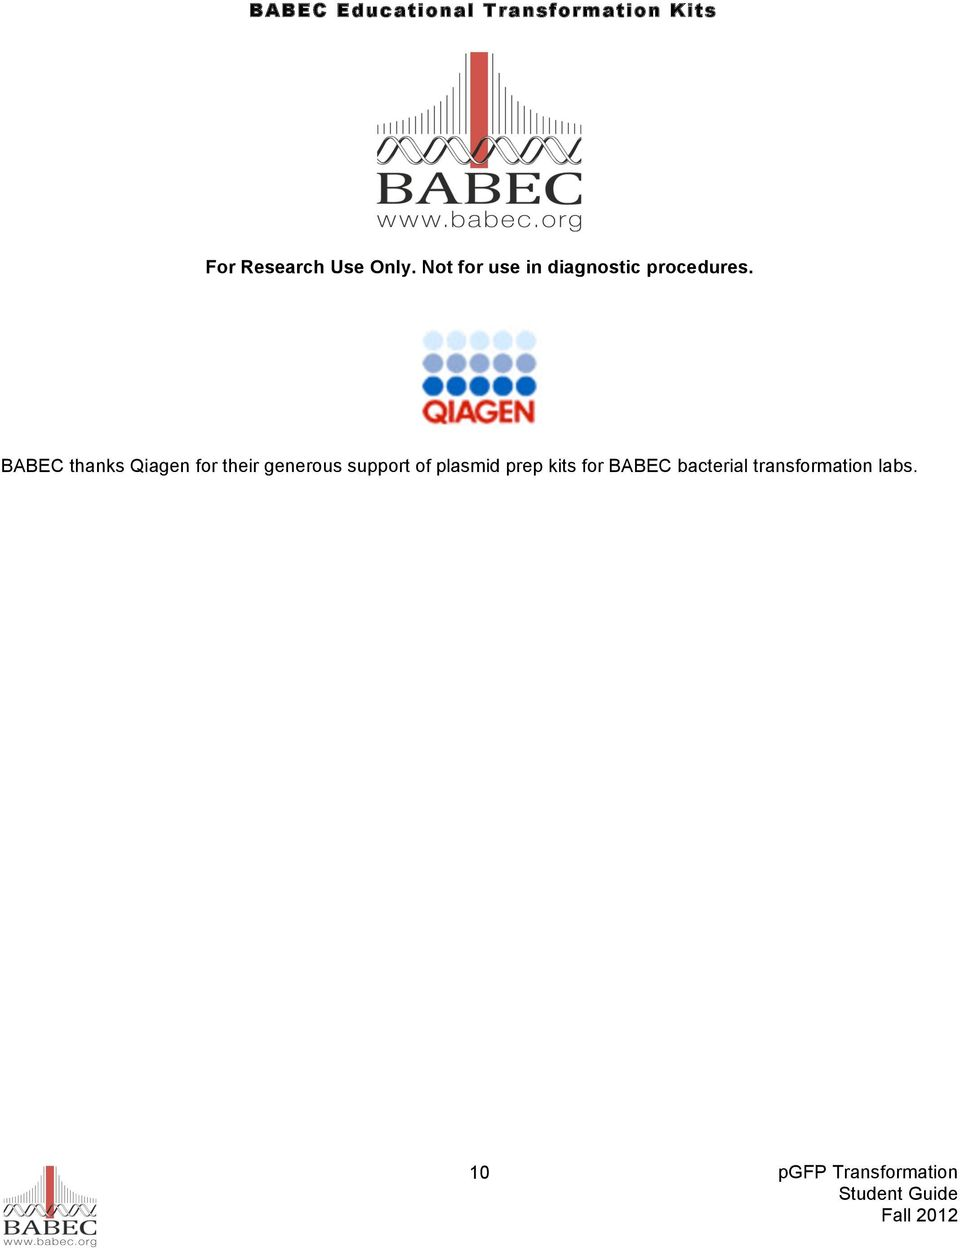 BABEC thanks Qiagen for their generous support of